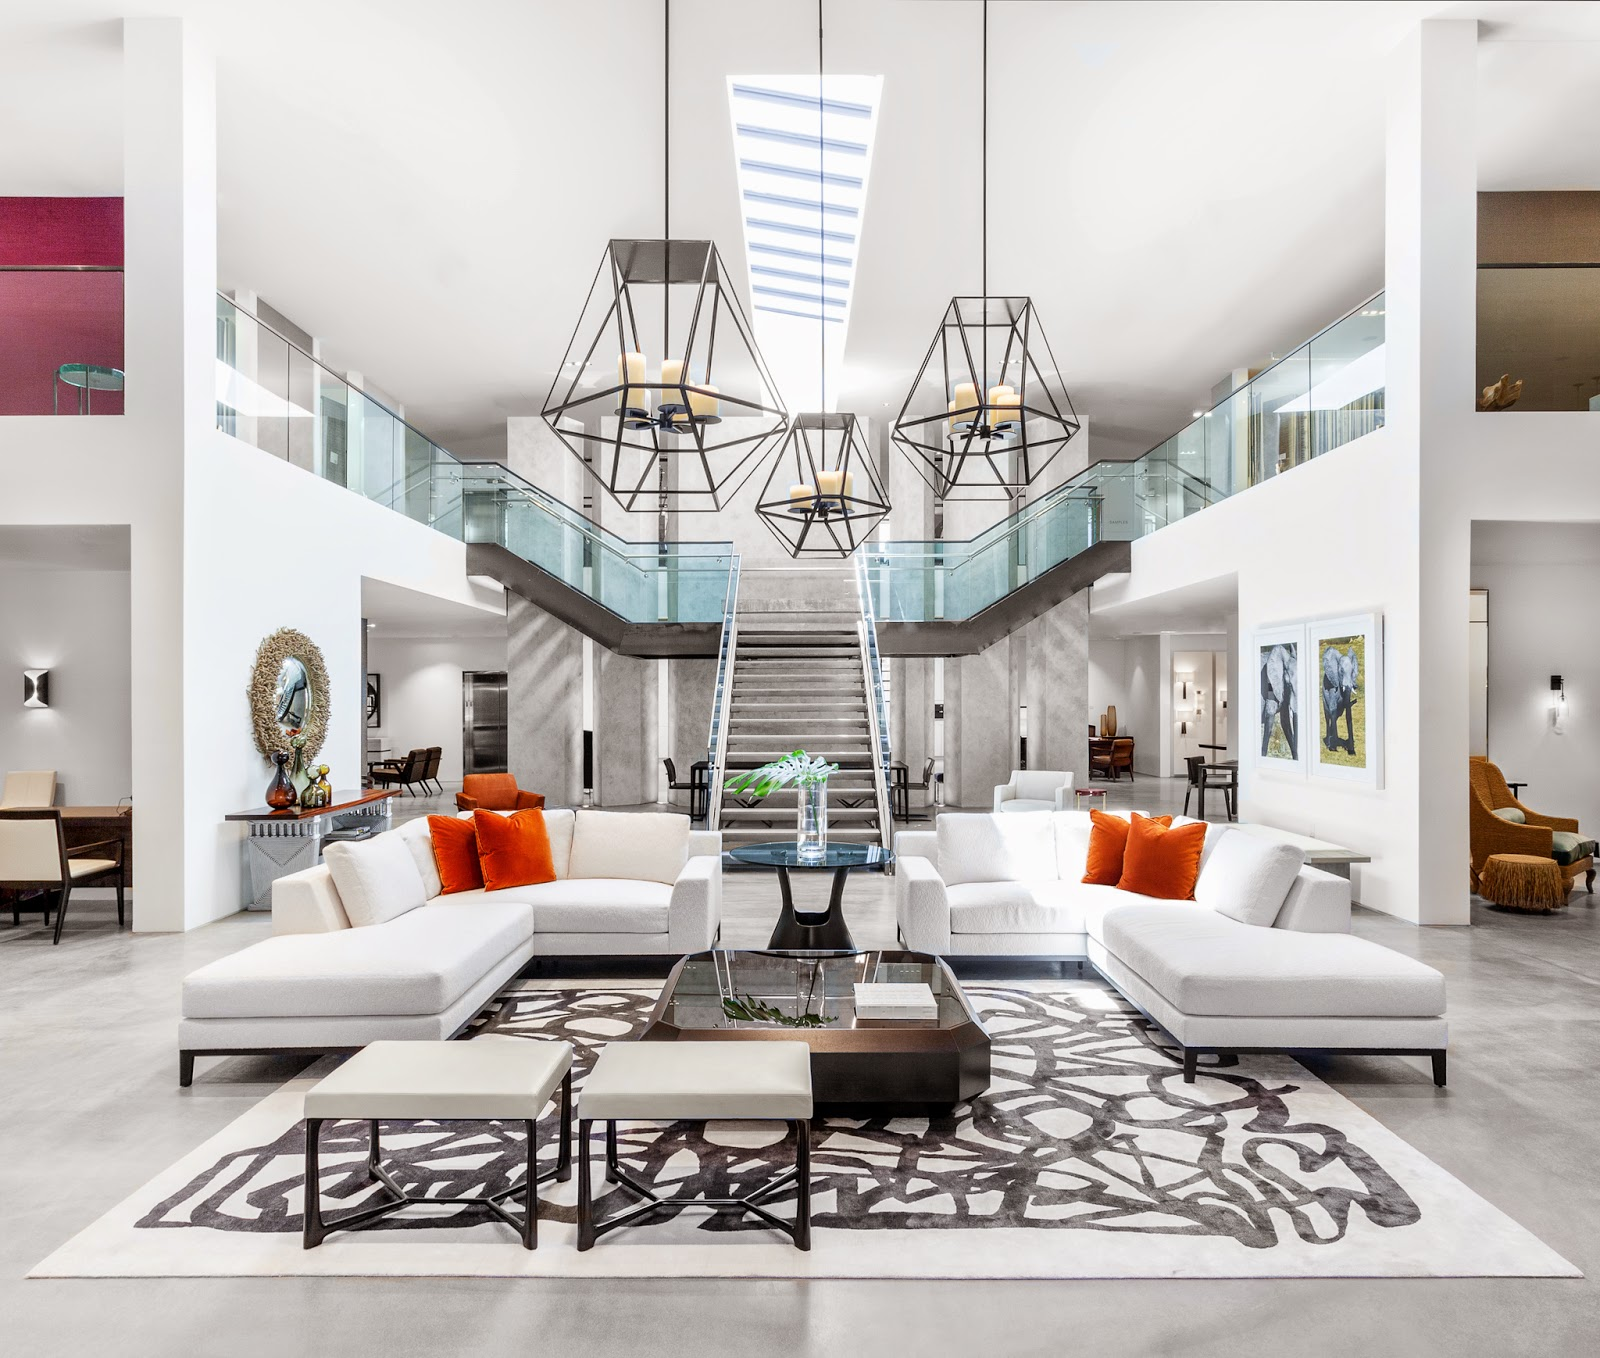 Women Empowerment in Design - Holly Hunt Showroom Dallas - empowering women - holly hunt furniture - holly hunt lighting - holly hunt design - interior design showrooms in dallas